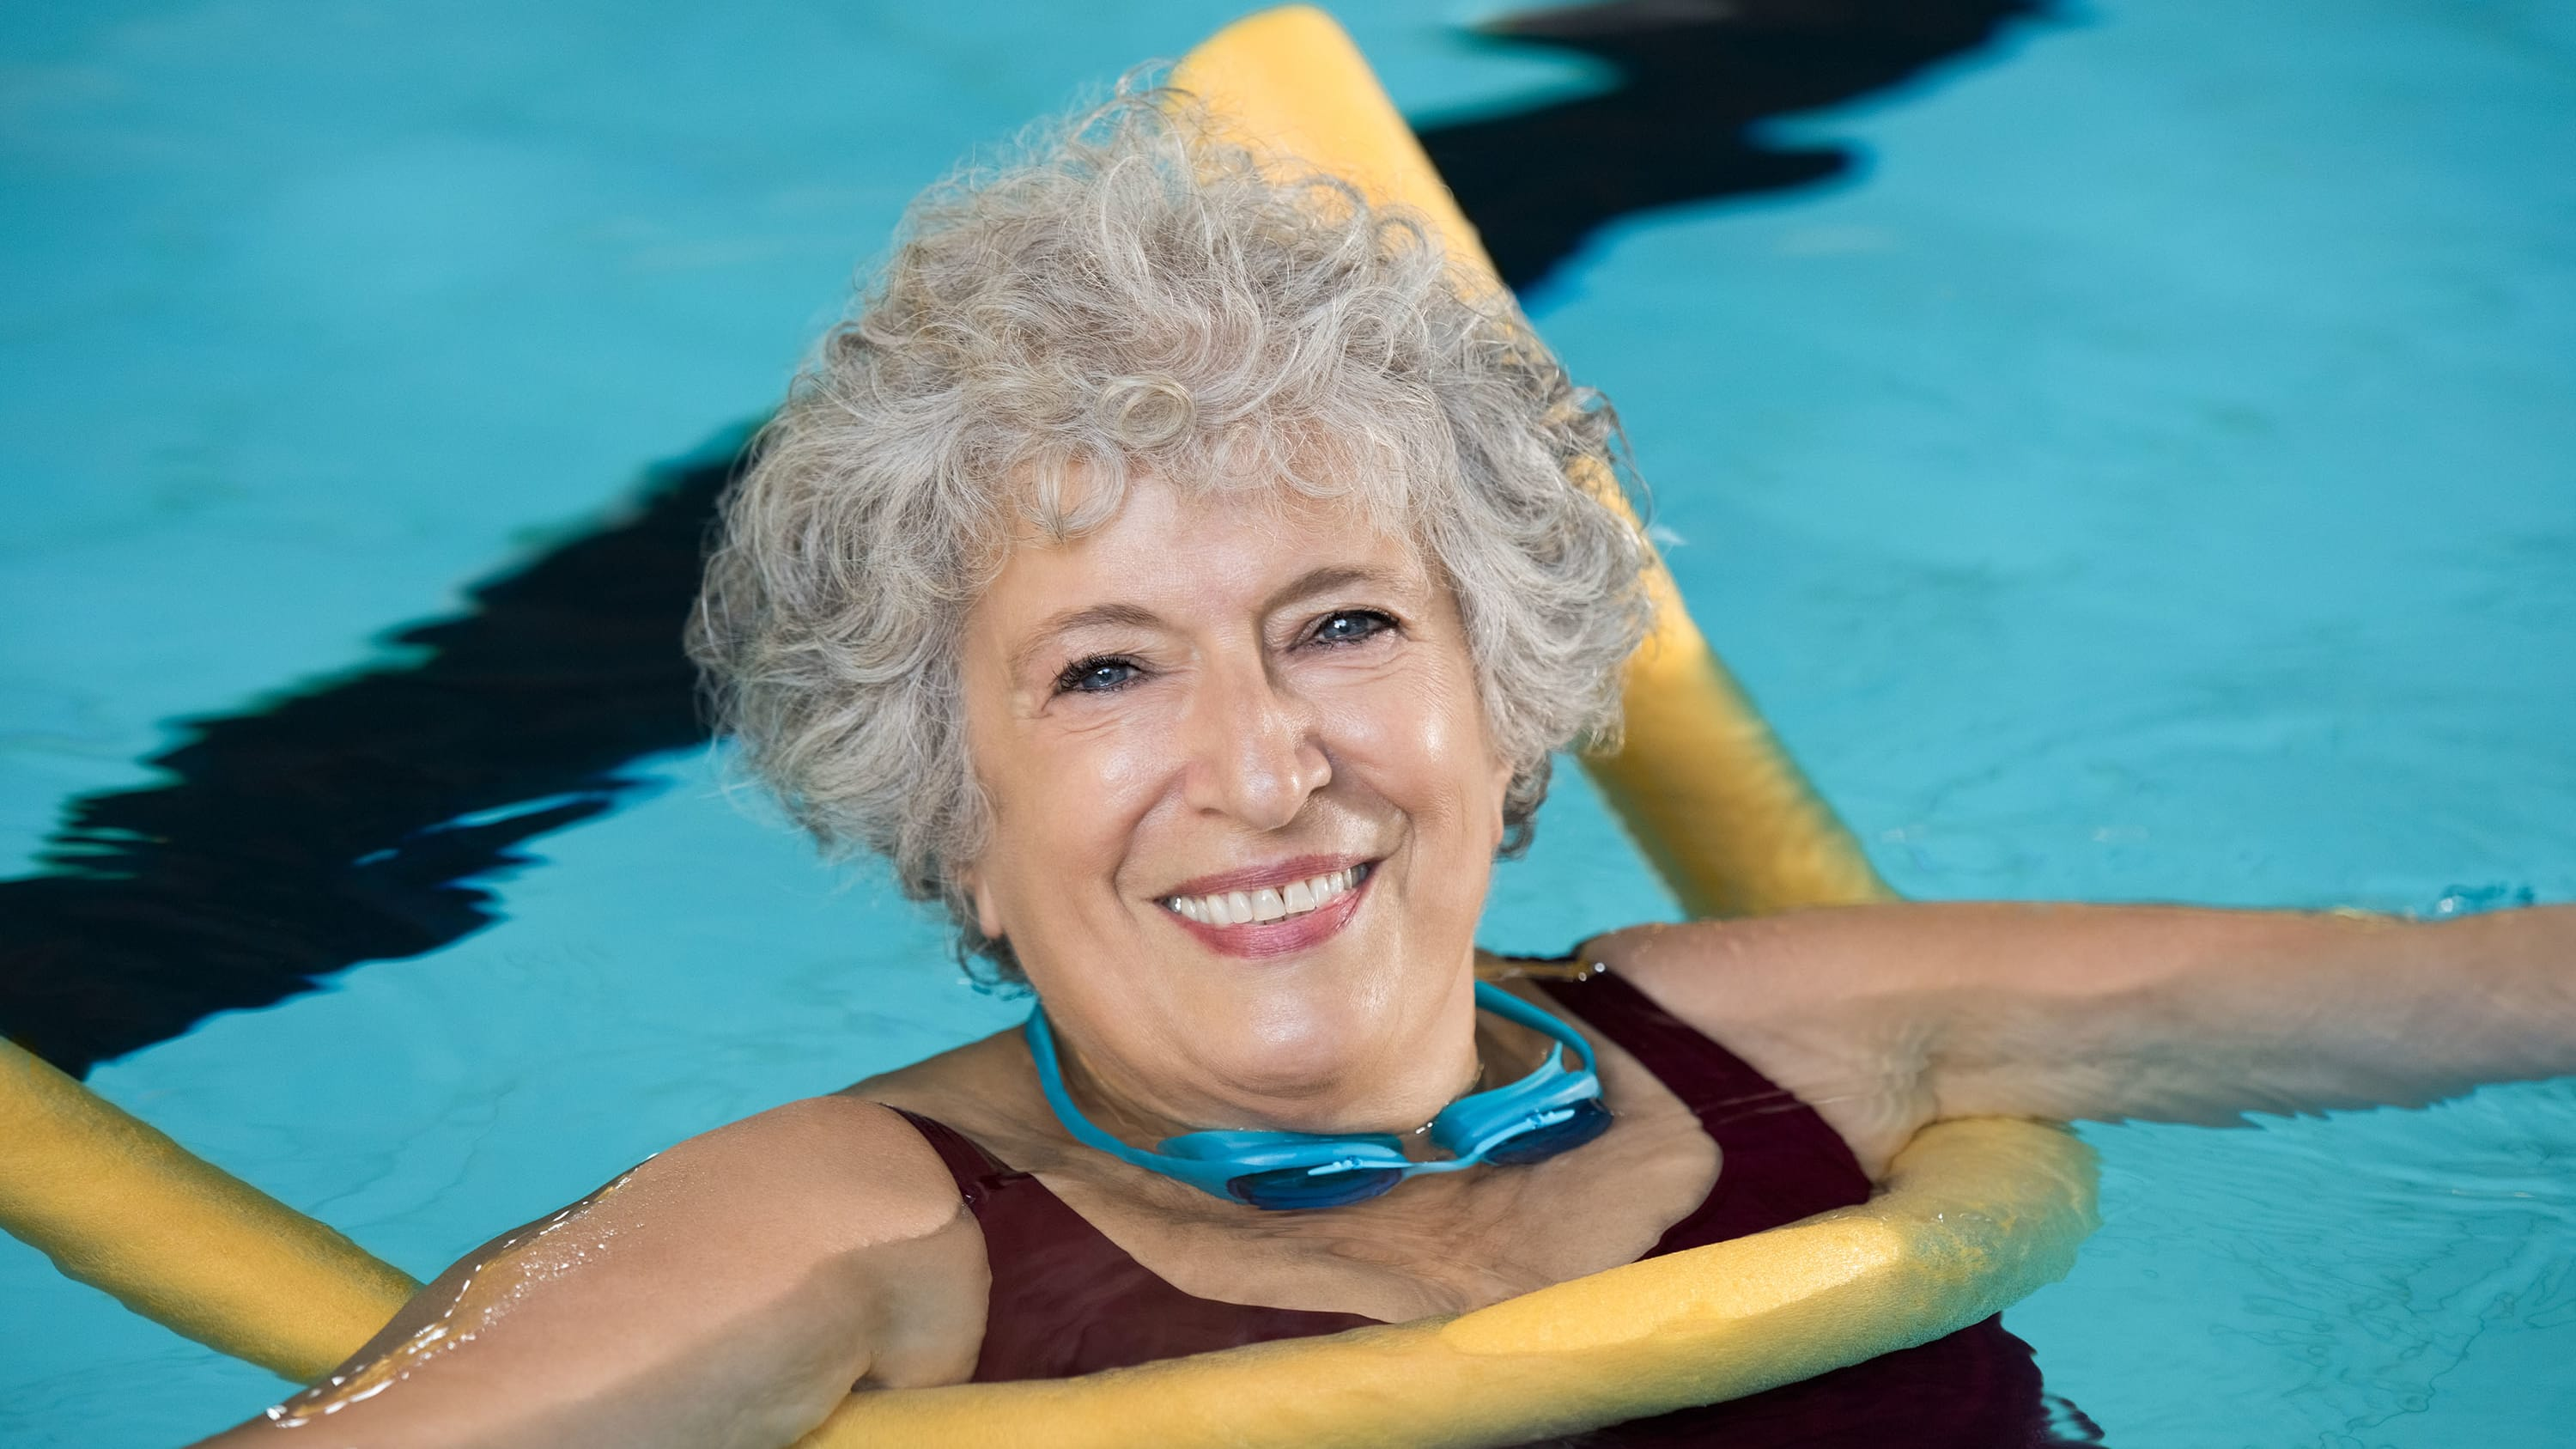 woman enjoying water aerobics, possibly after undergoing bariatric surgery